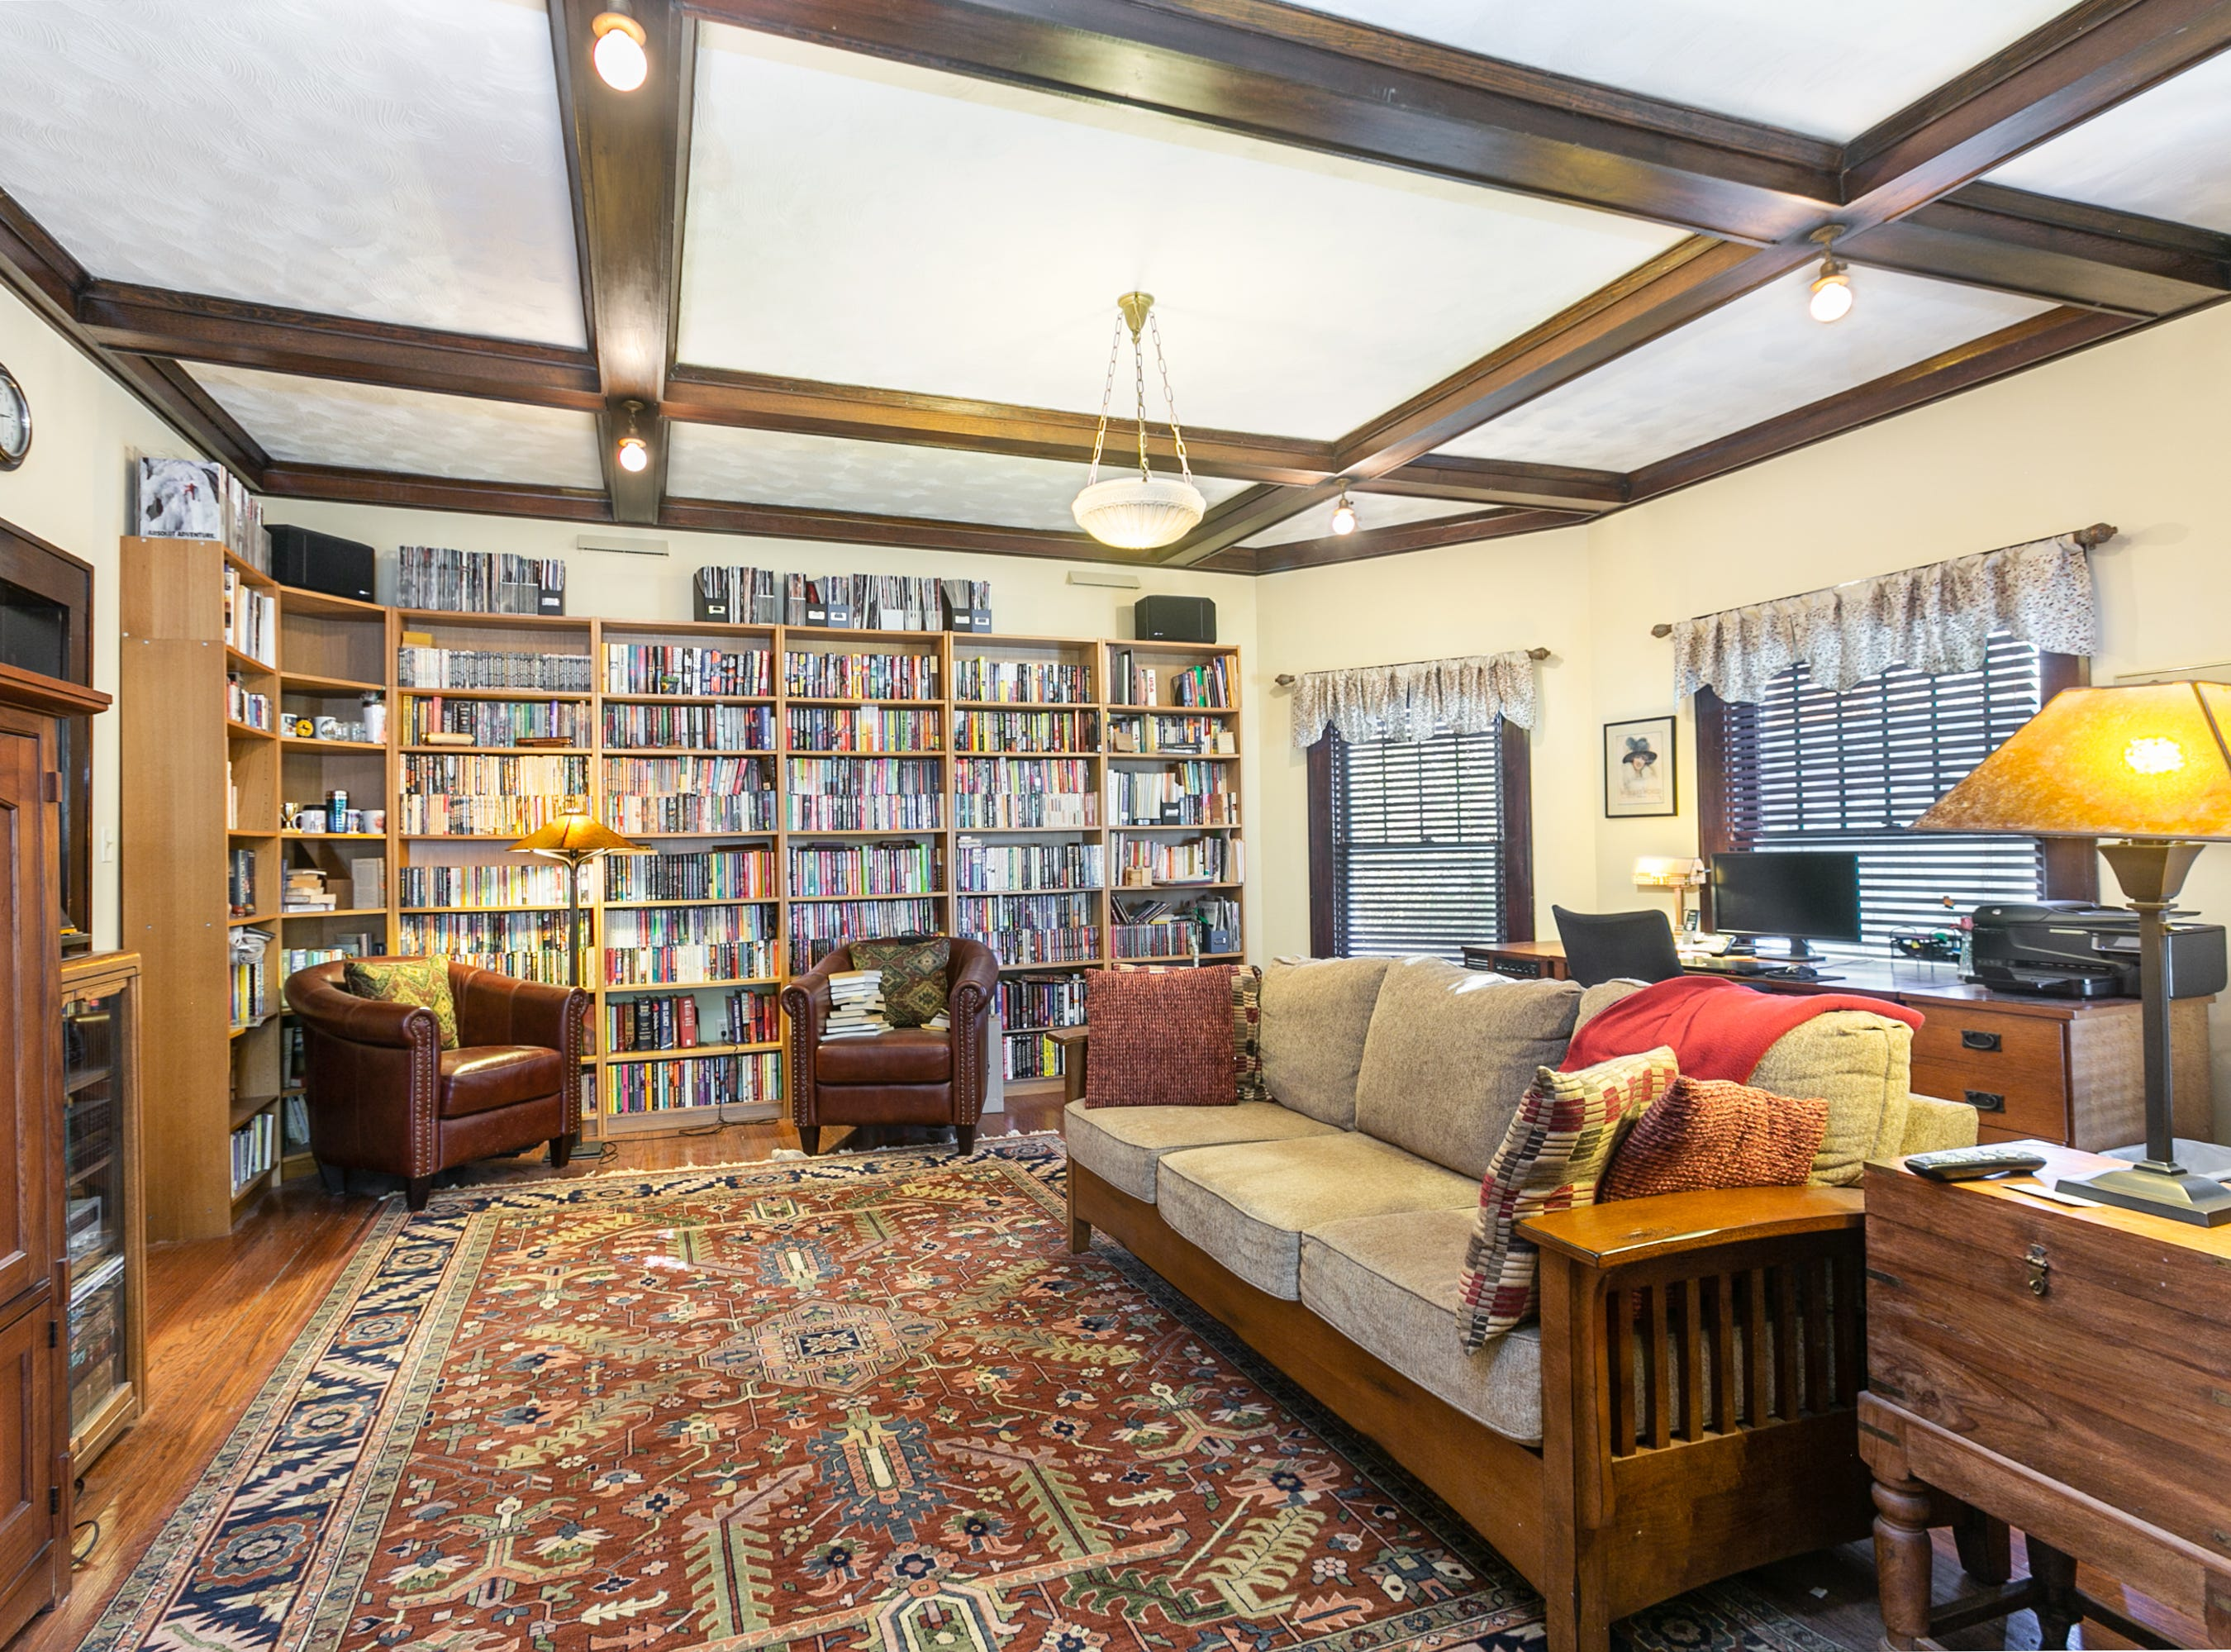 The library's coffered ceiling was one of two elements that initially drew Cheryl Braswell to the home. The other was leaded glass on interior doors.